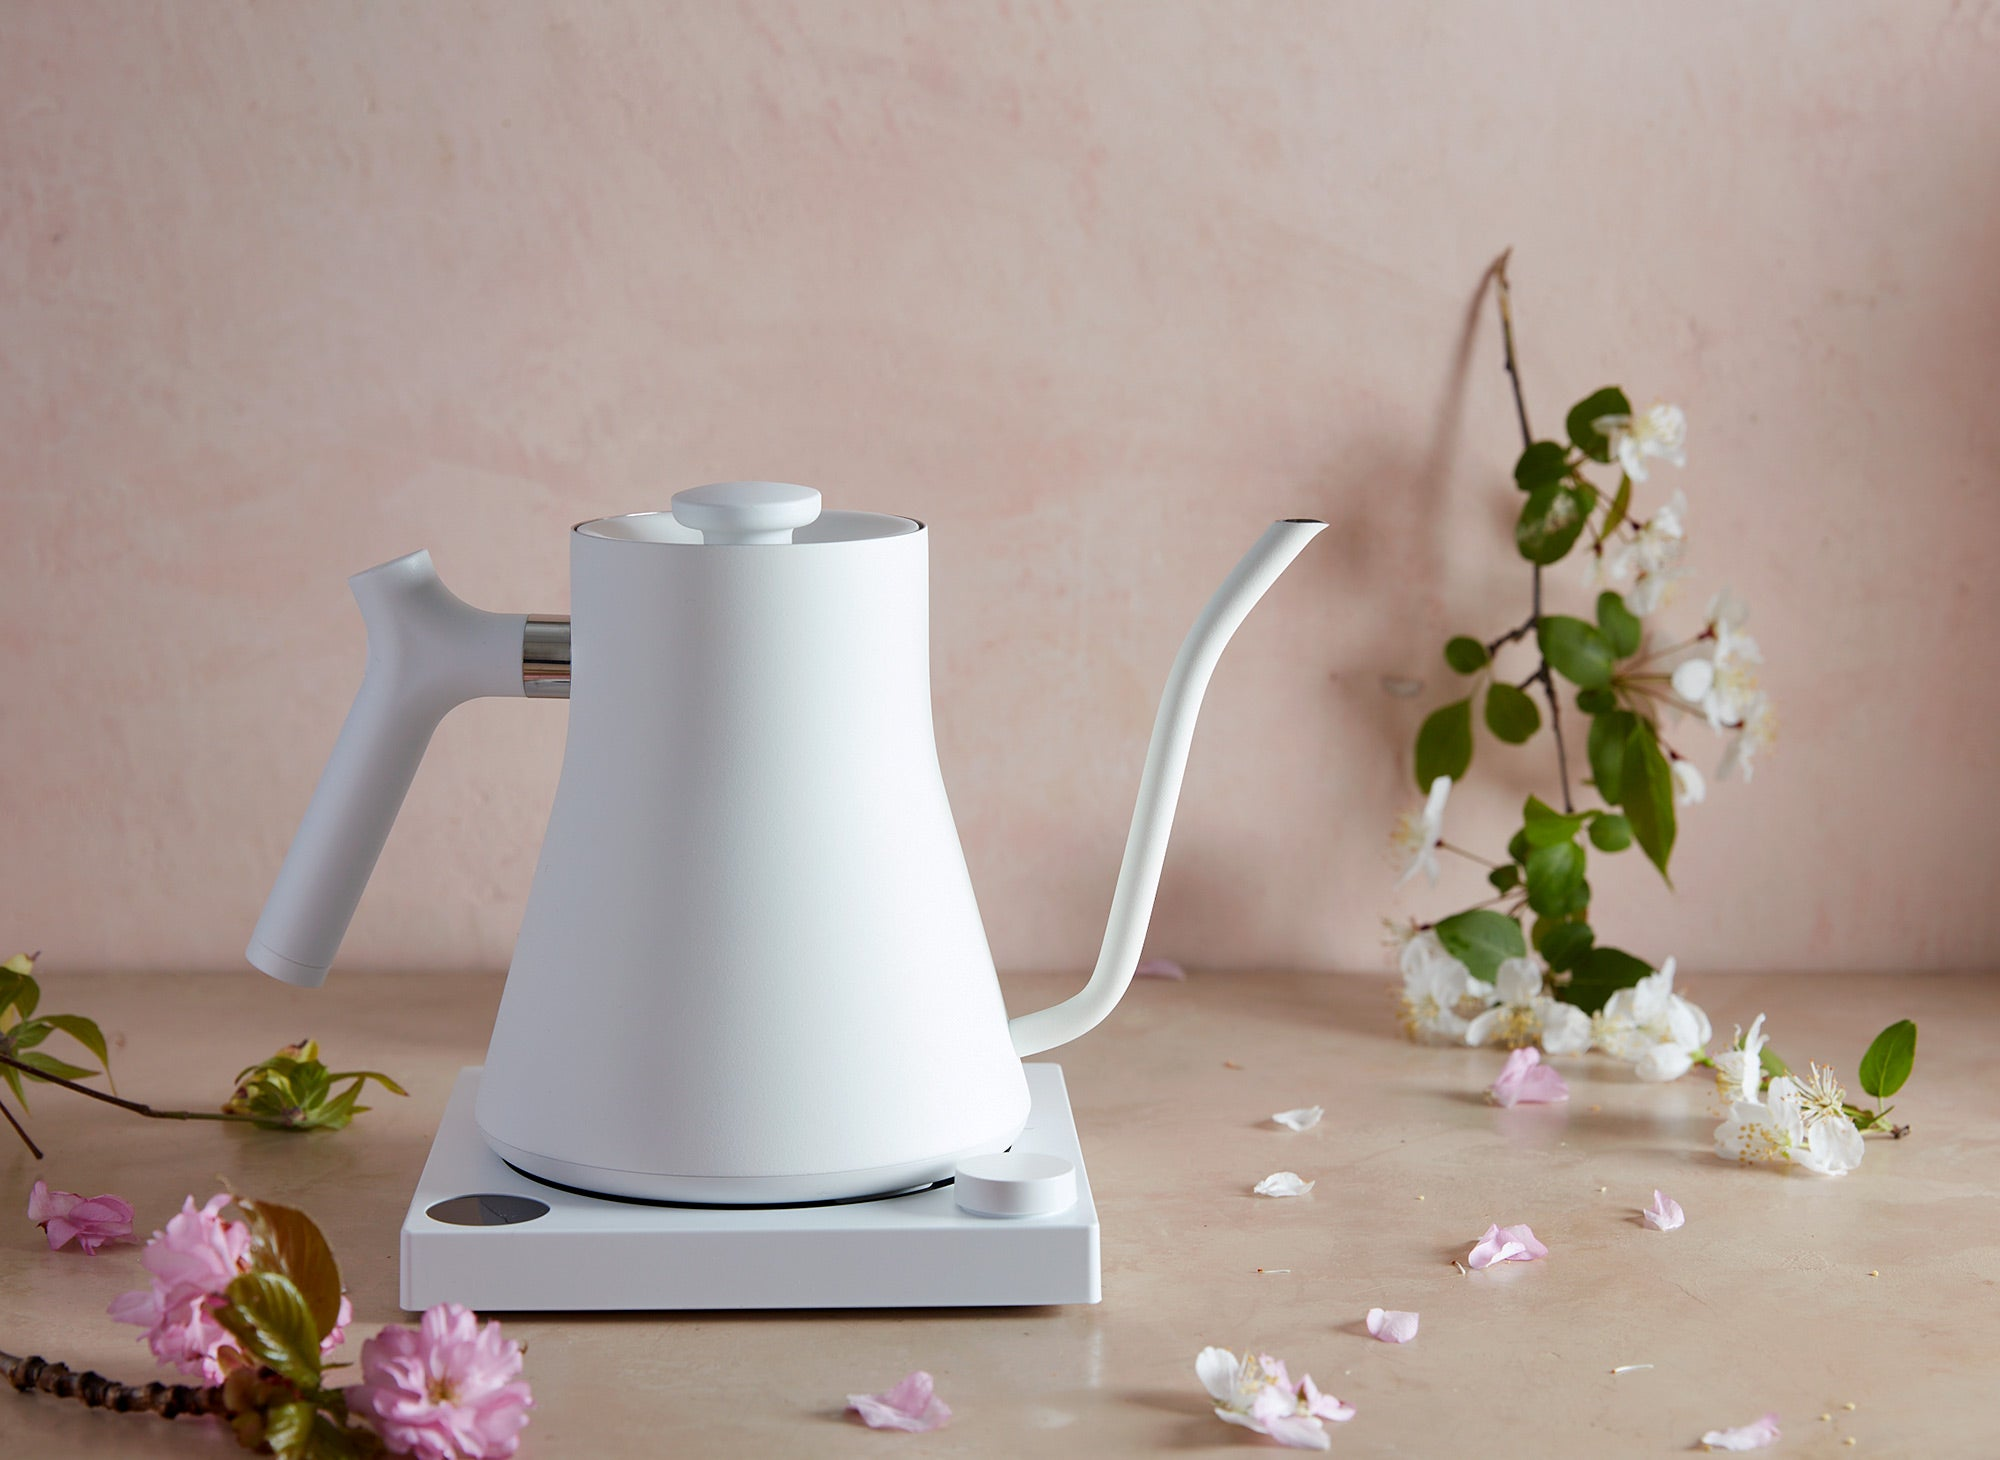 Luxury Tea Kettles